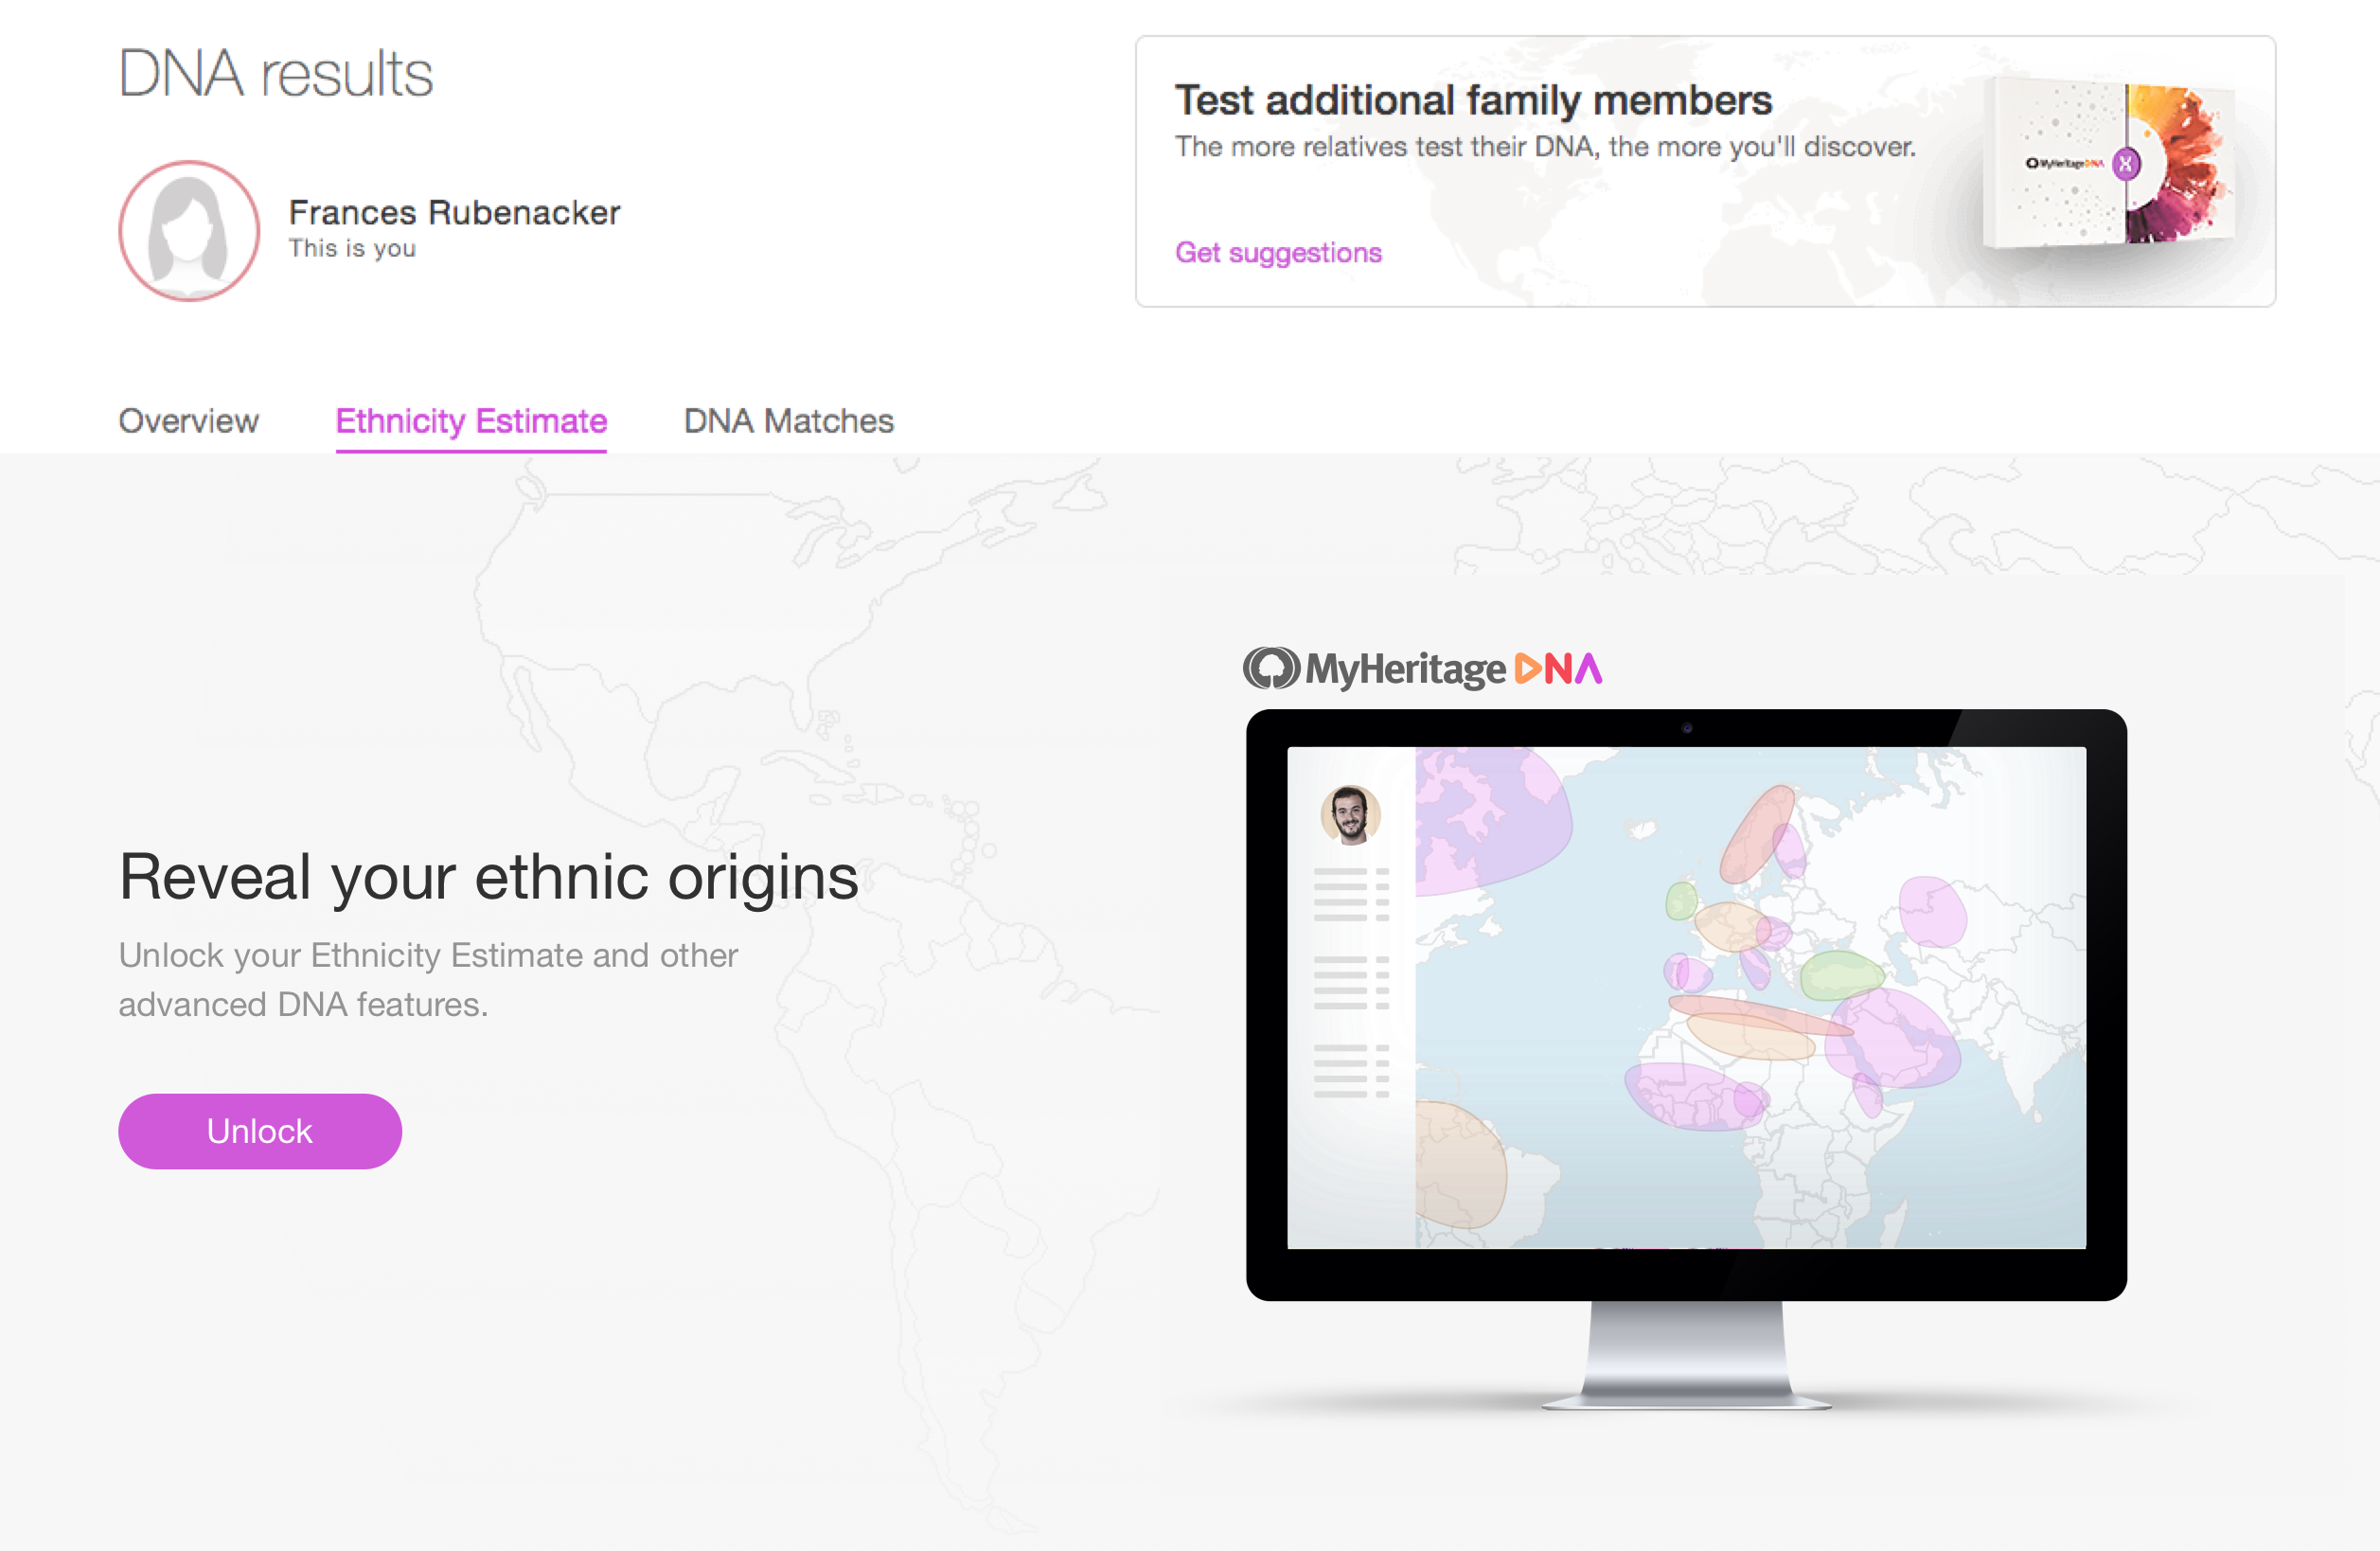 Starting Today: New DNA Upload Policy - MyHeritage Blog